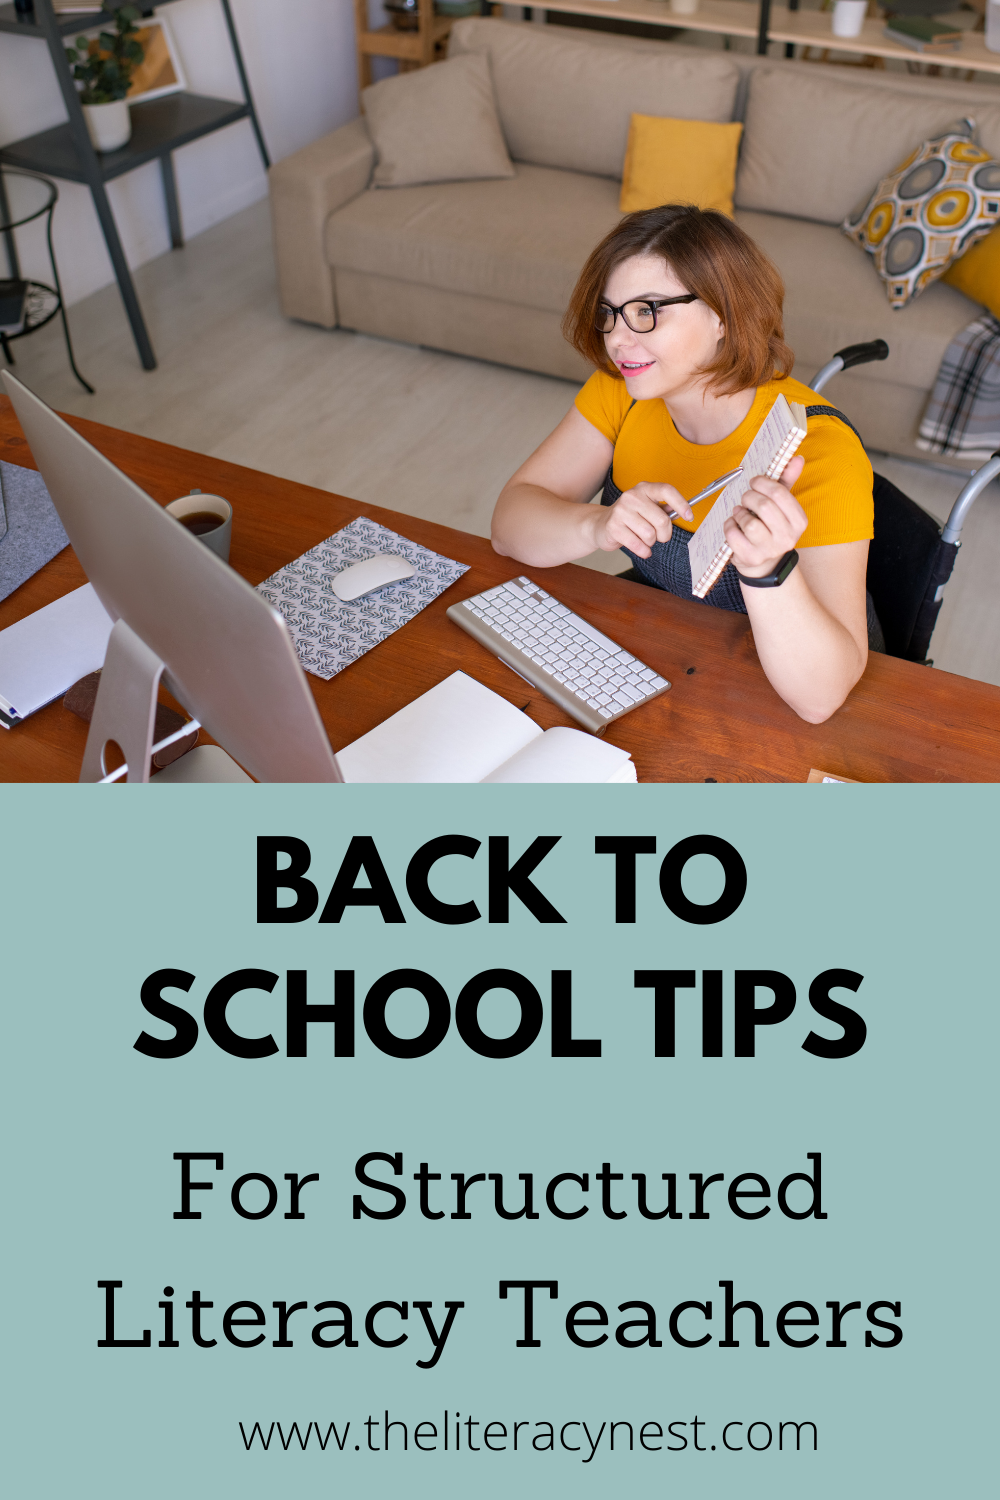 Back to School Tips for Structured Literacy Teachers 1